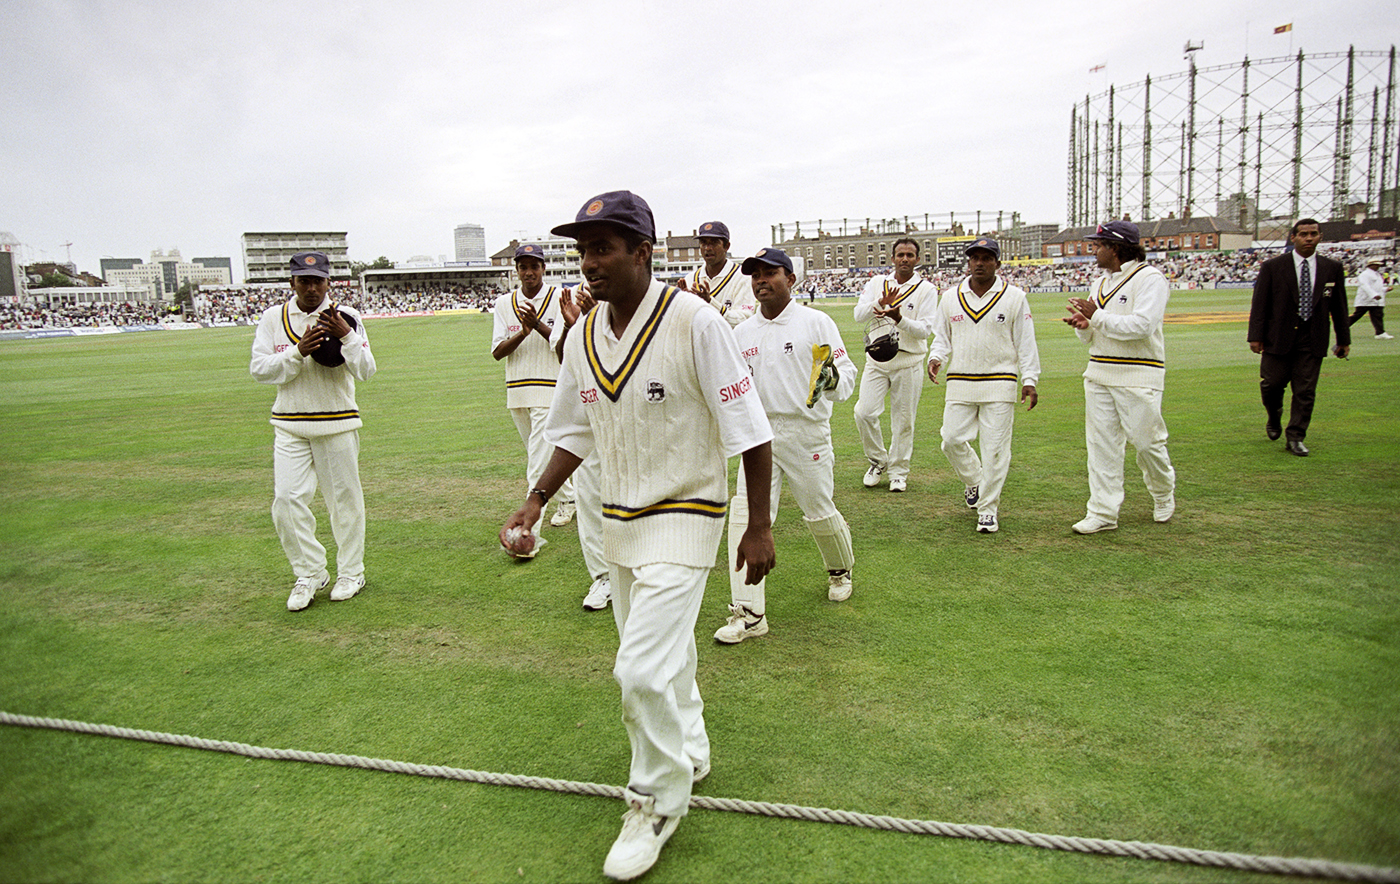 Murali's 16 for 220 at The Oval remained his best match figures over his career